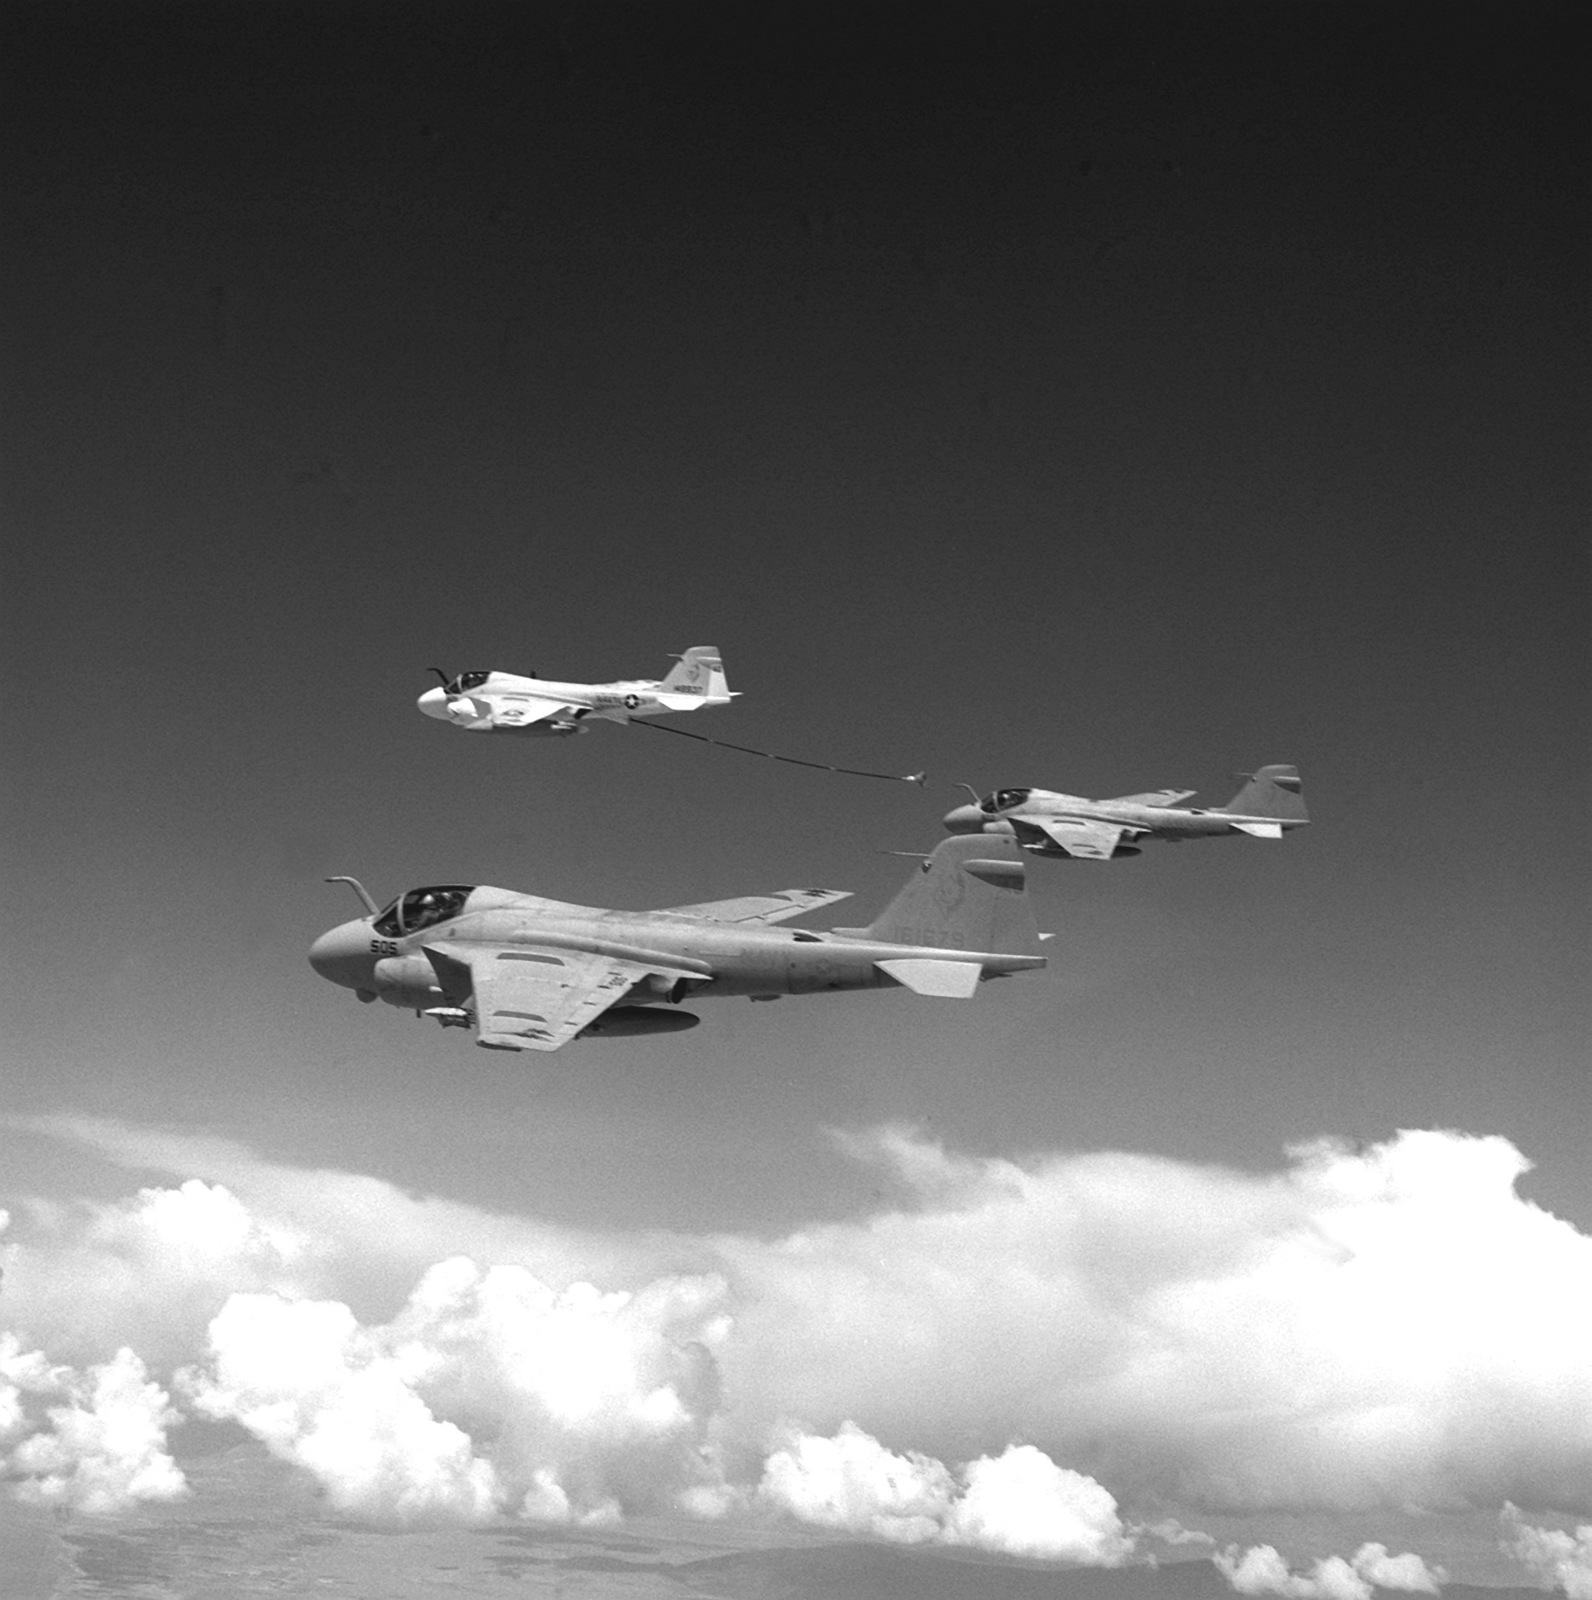 An air-to-air left side view of two Attack Squadron 34 A-6E intruder aircraft preparing to refuel from an Attack Squadron 60 (VA-60) KA-6D Instruder aircraft over Naval Air Station, Fallon, during Carrier Air Wing 7 (CVW-7) strike training